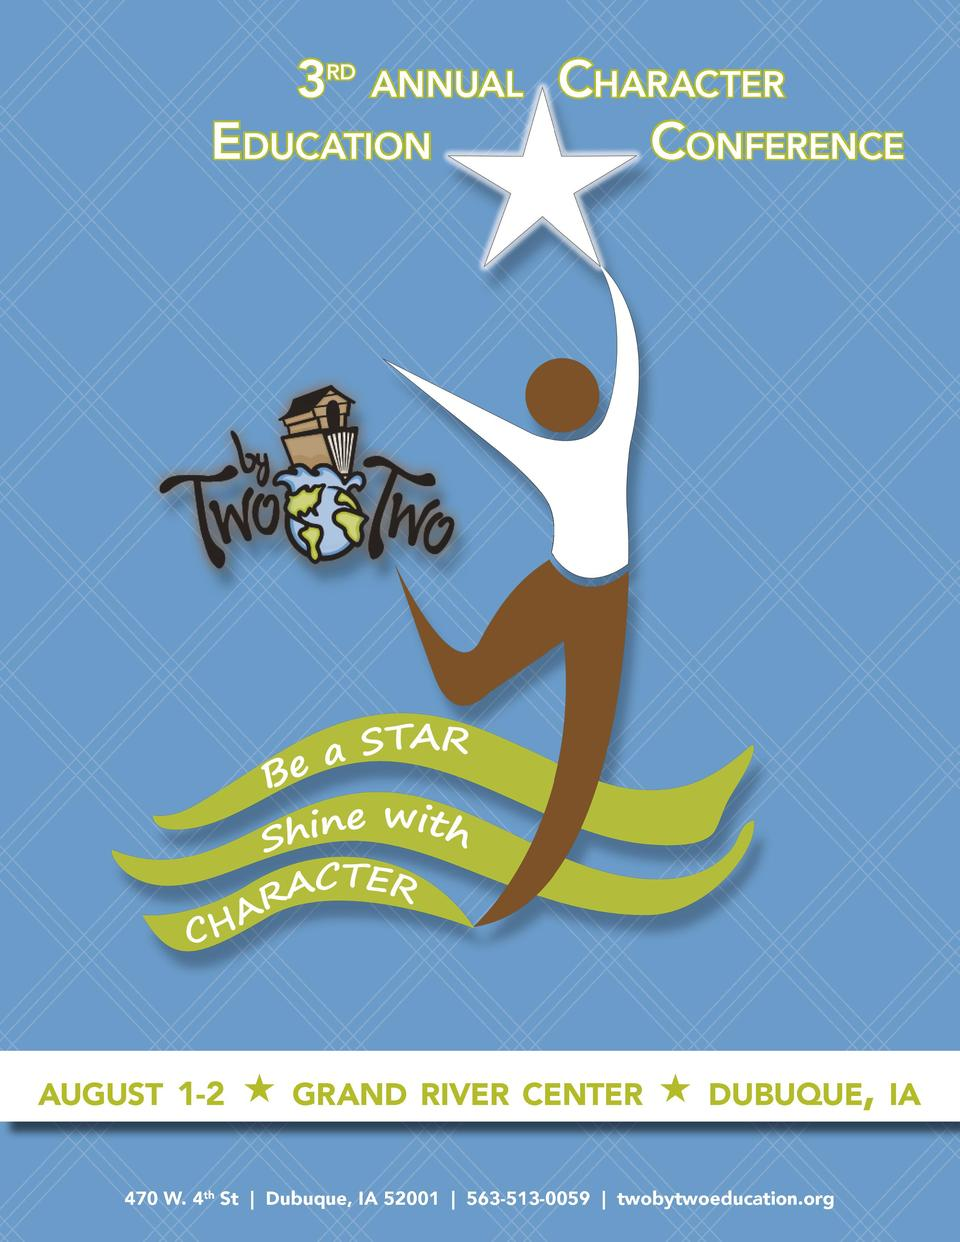 3rd annual Character Education Conference  august 1-2         grand river center     dubuque, ia  470 W. 4th St   Dubuque,...